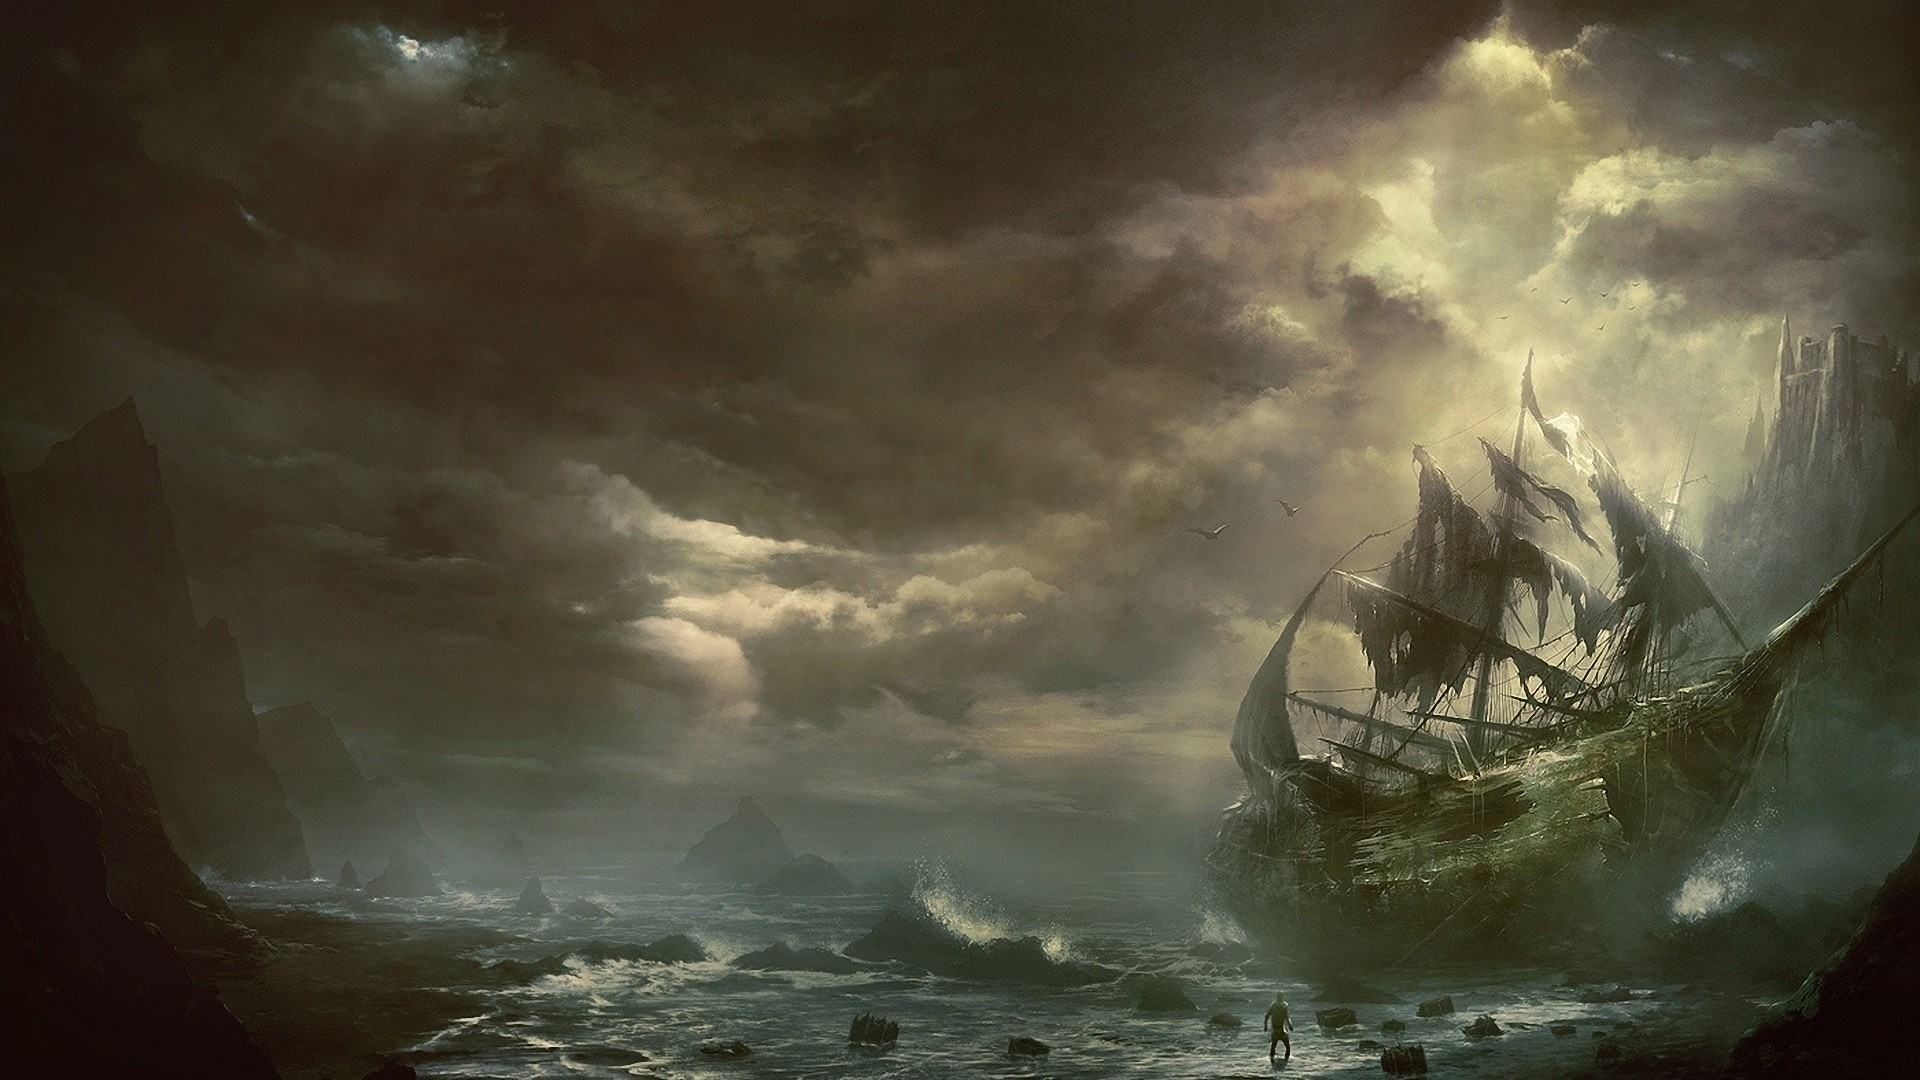 1920x1080 Preview wallpaper mountains, clouds, sea, ship, sailboat, destroyed